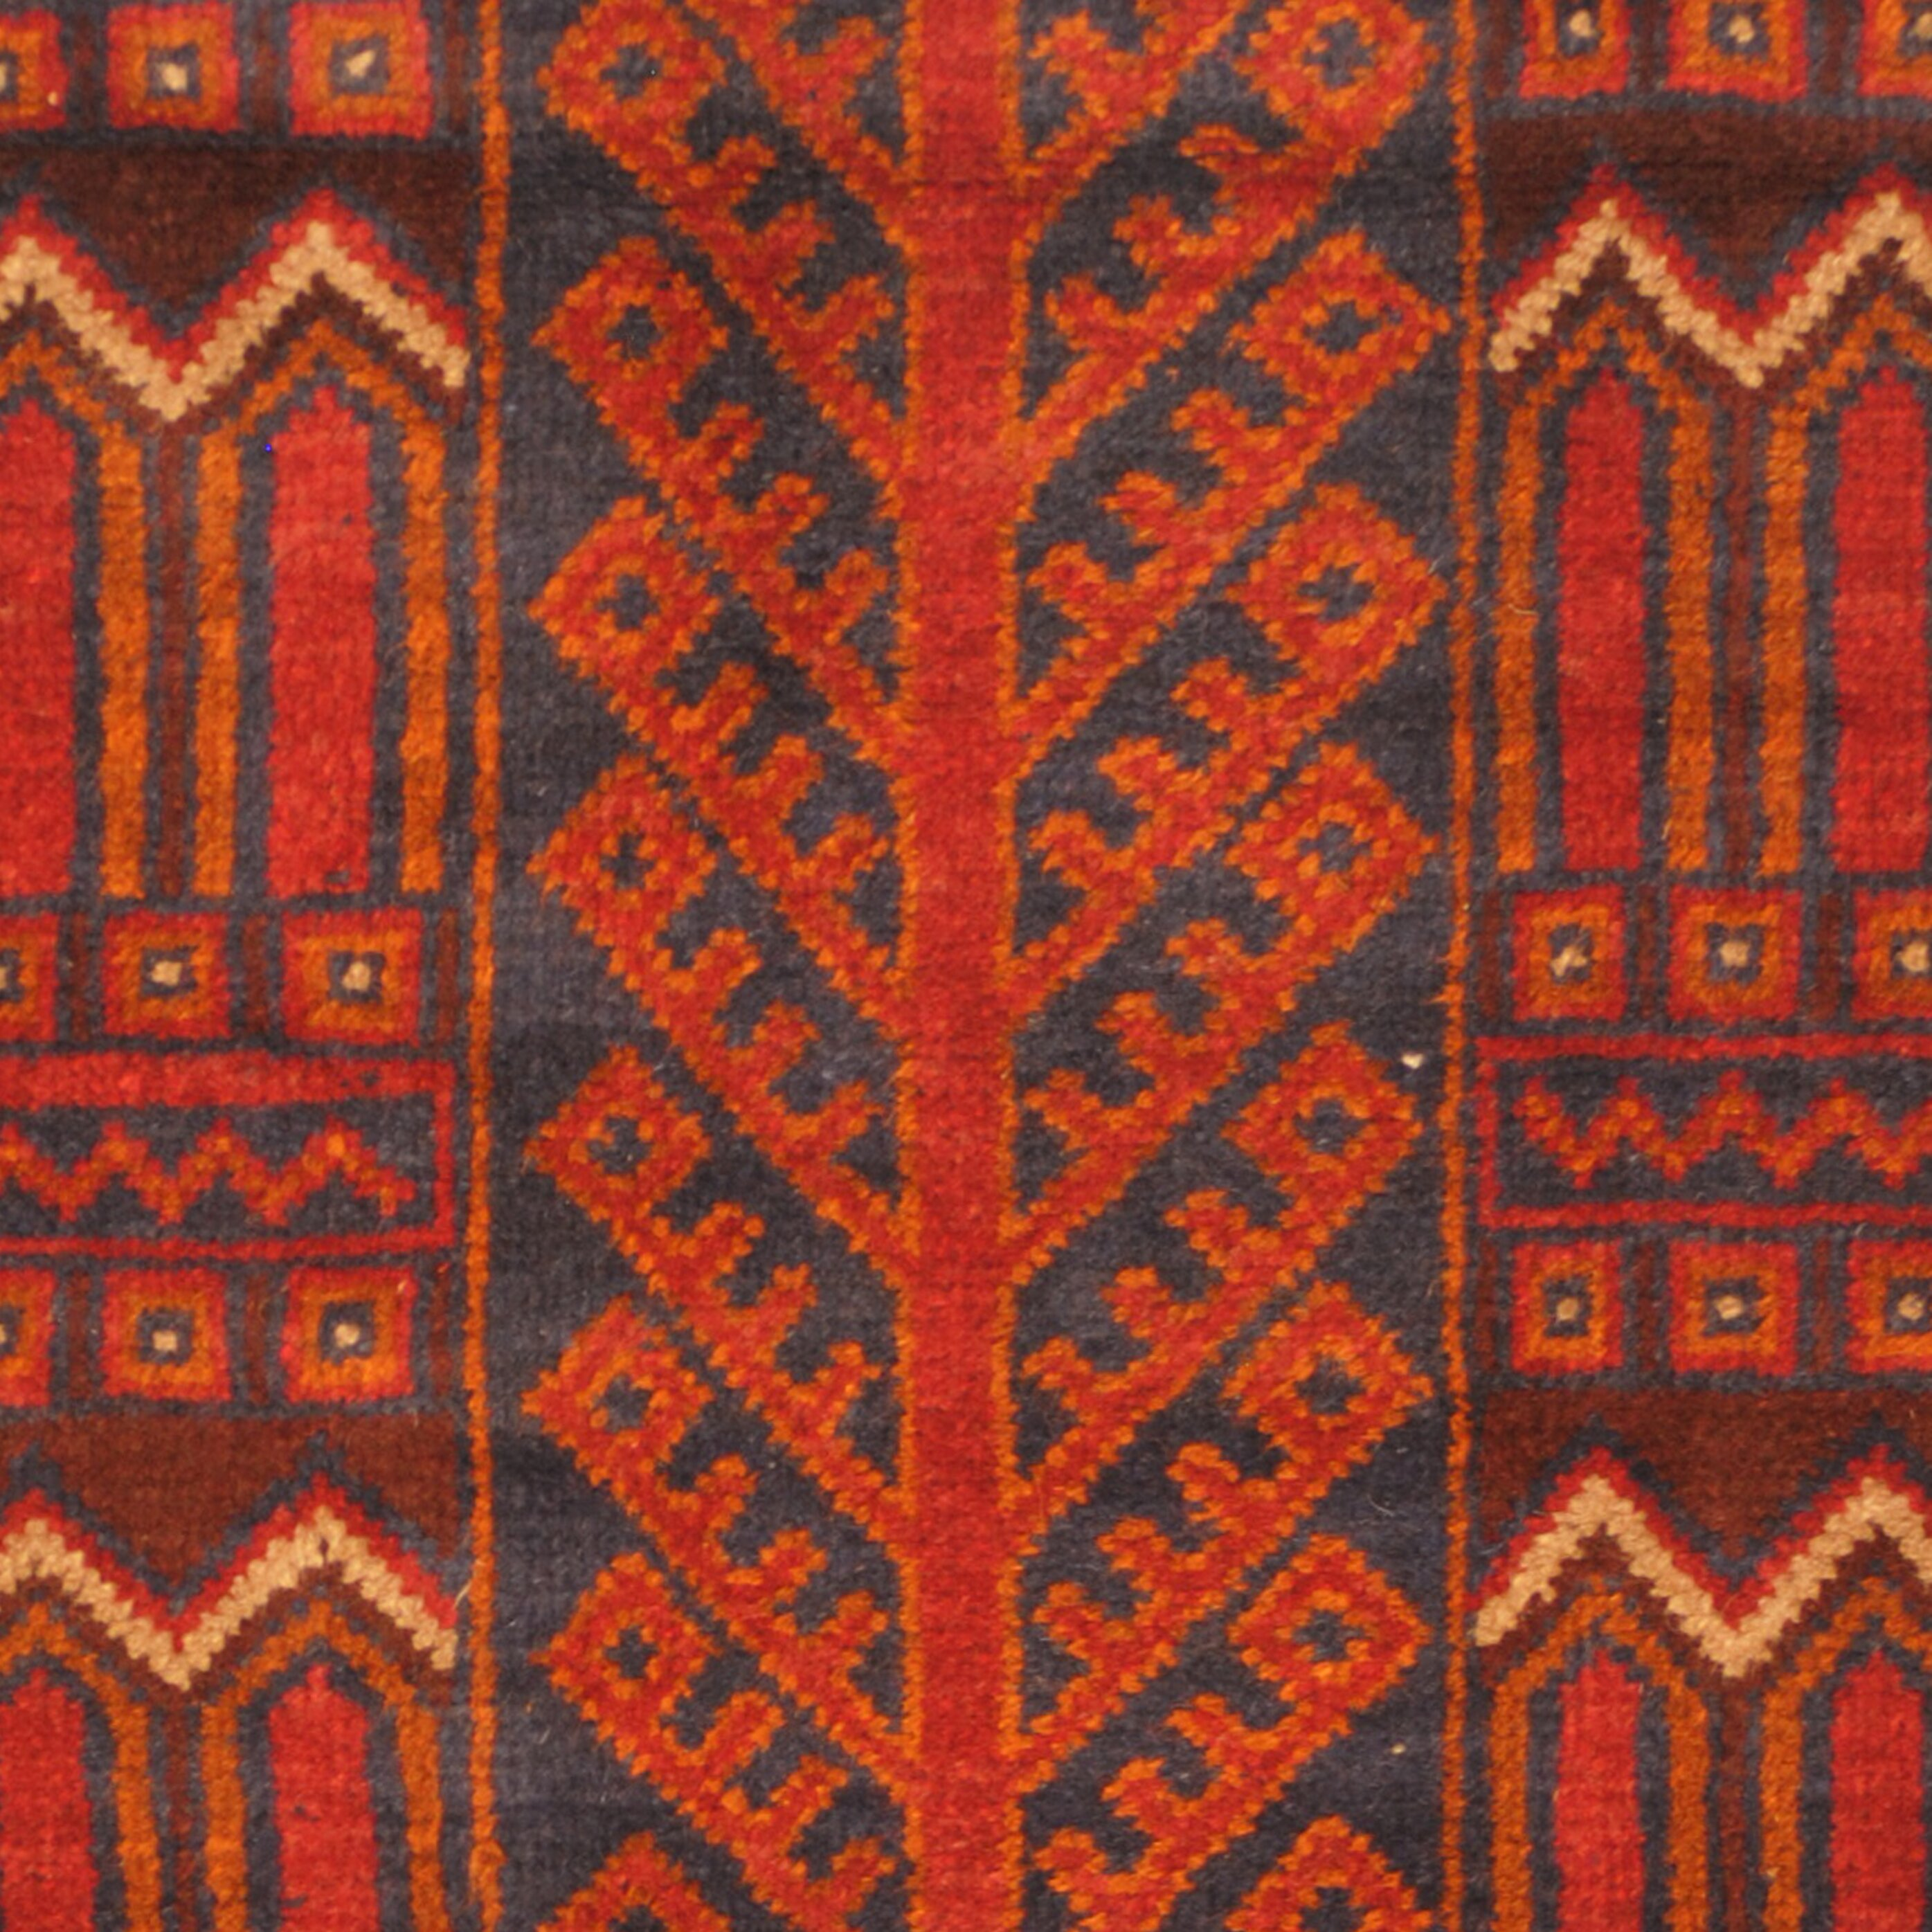 Hand Knotted Persian Kashan Wool Area Rug Ebth: Herat Oriental Balouchi Hand Knotted Wool Red/Navy Area